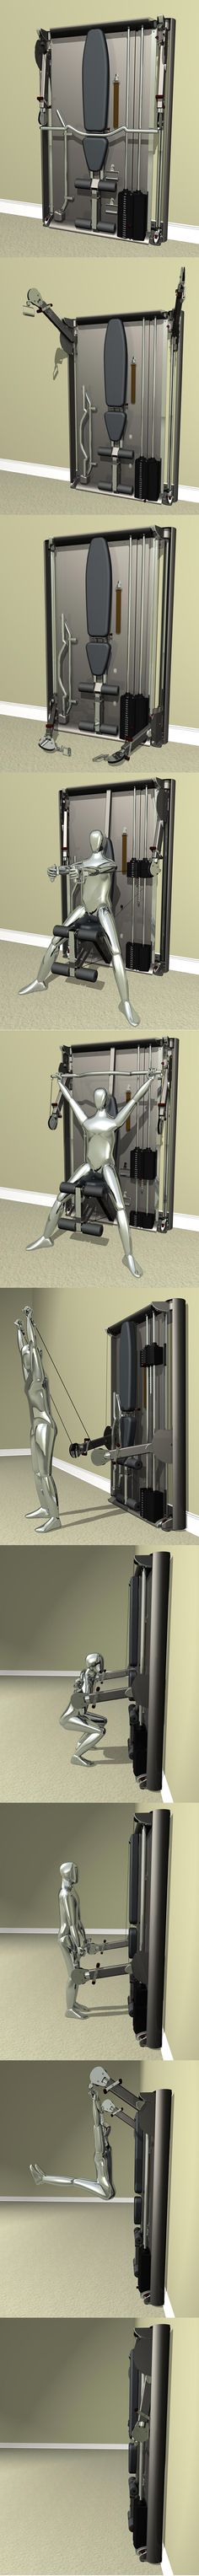 SlimGym is a sleek, futuristic commercial quality gym that can be positioned into innumerable positions to provide an unprecedented amount of exercise variation, all in an ultra-compact foot print of 4 square feet. Free motion movements with the exercise bar or hand grips mimic the feel of free weights. Fast and efficient transitions between exercises and resistance levels allows for circuit training. SlimGym is the last gym you will ever need or want. SlimGym - the ultimate home gym.